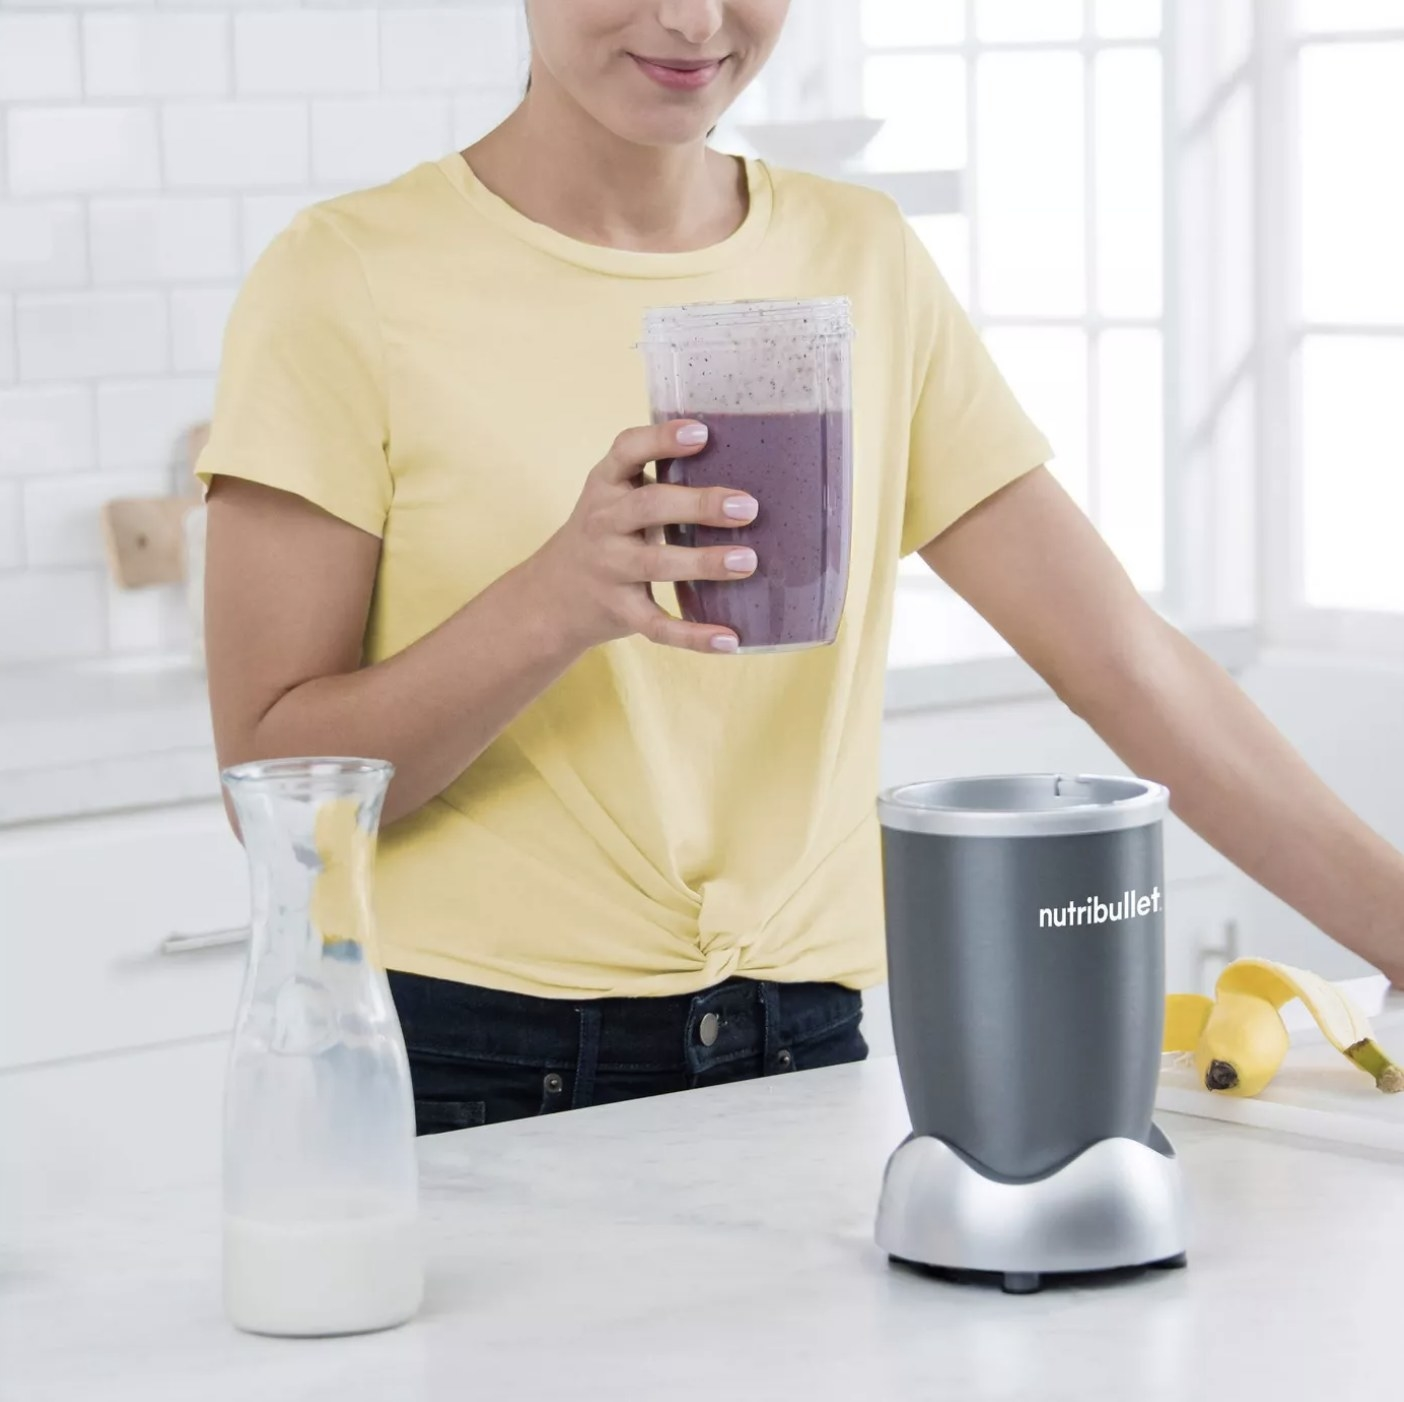 Person is drinking a smoothie from the Nutribullet